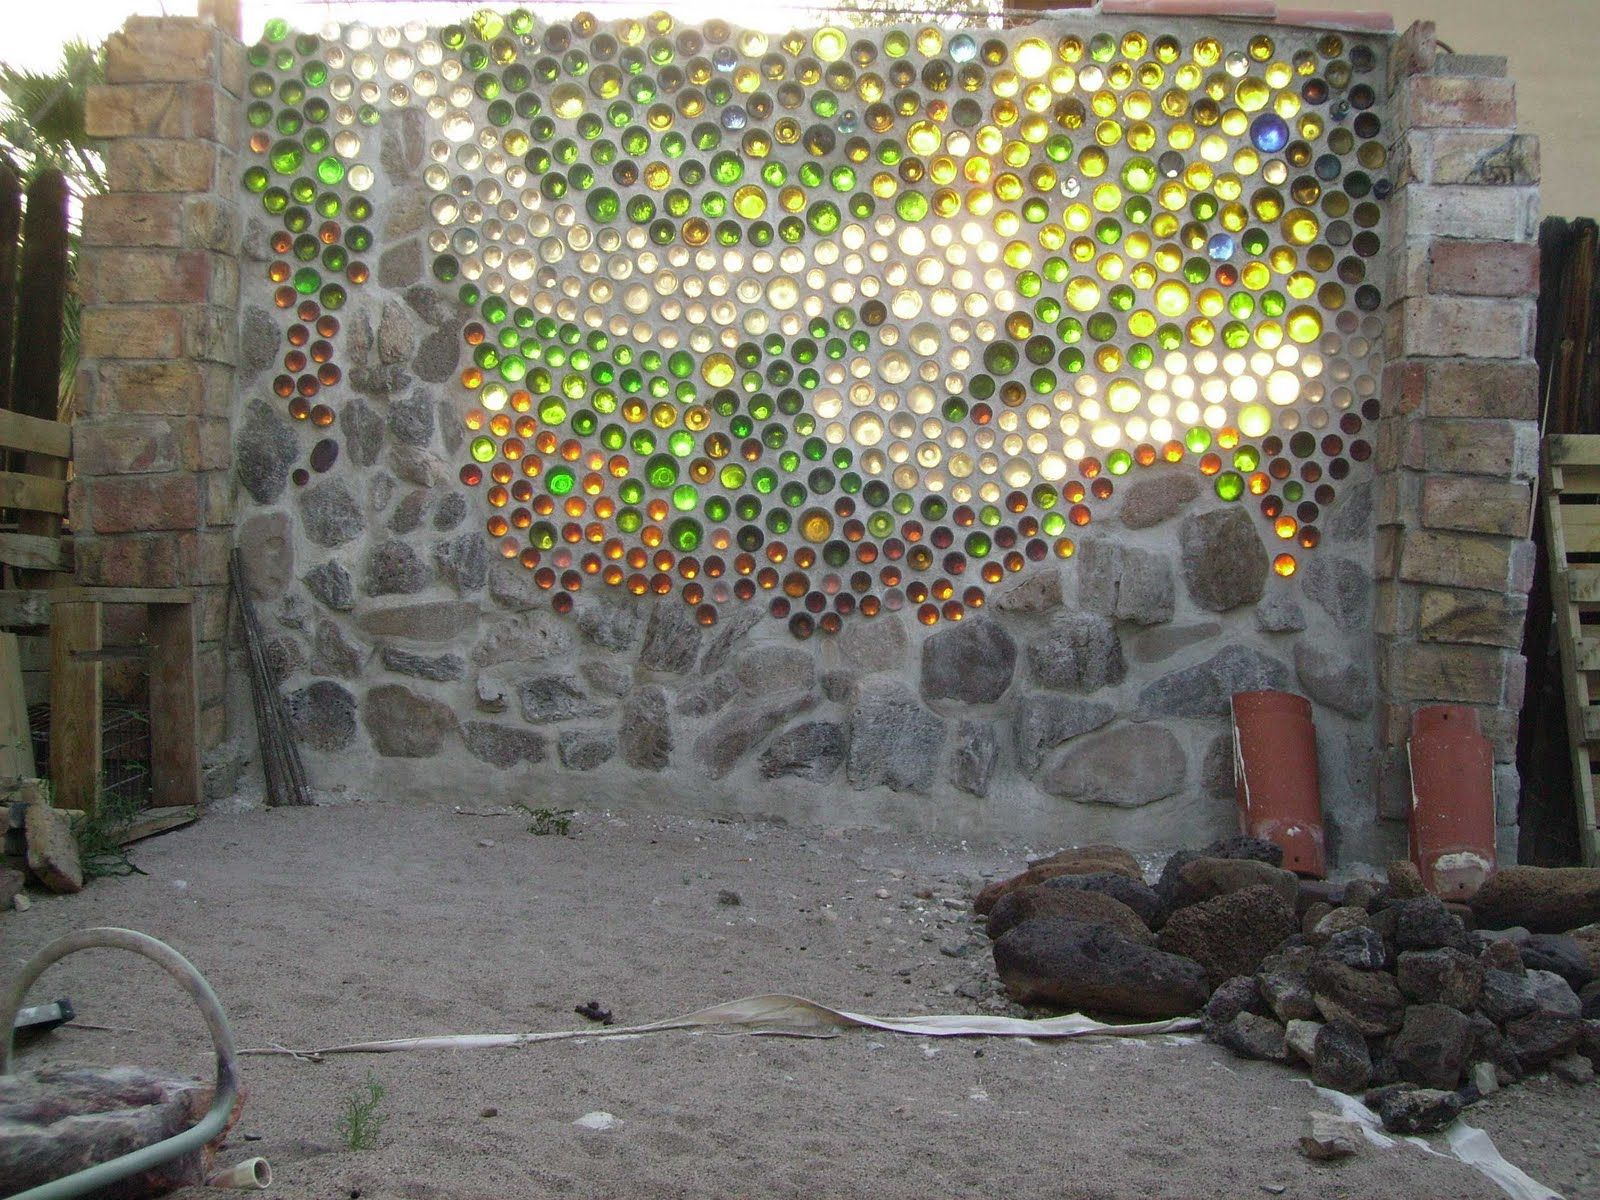 bottle wall bottle wall is a wall made out of glass